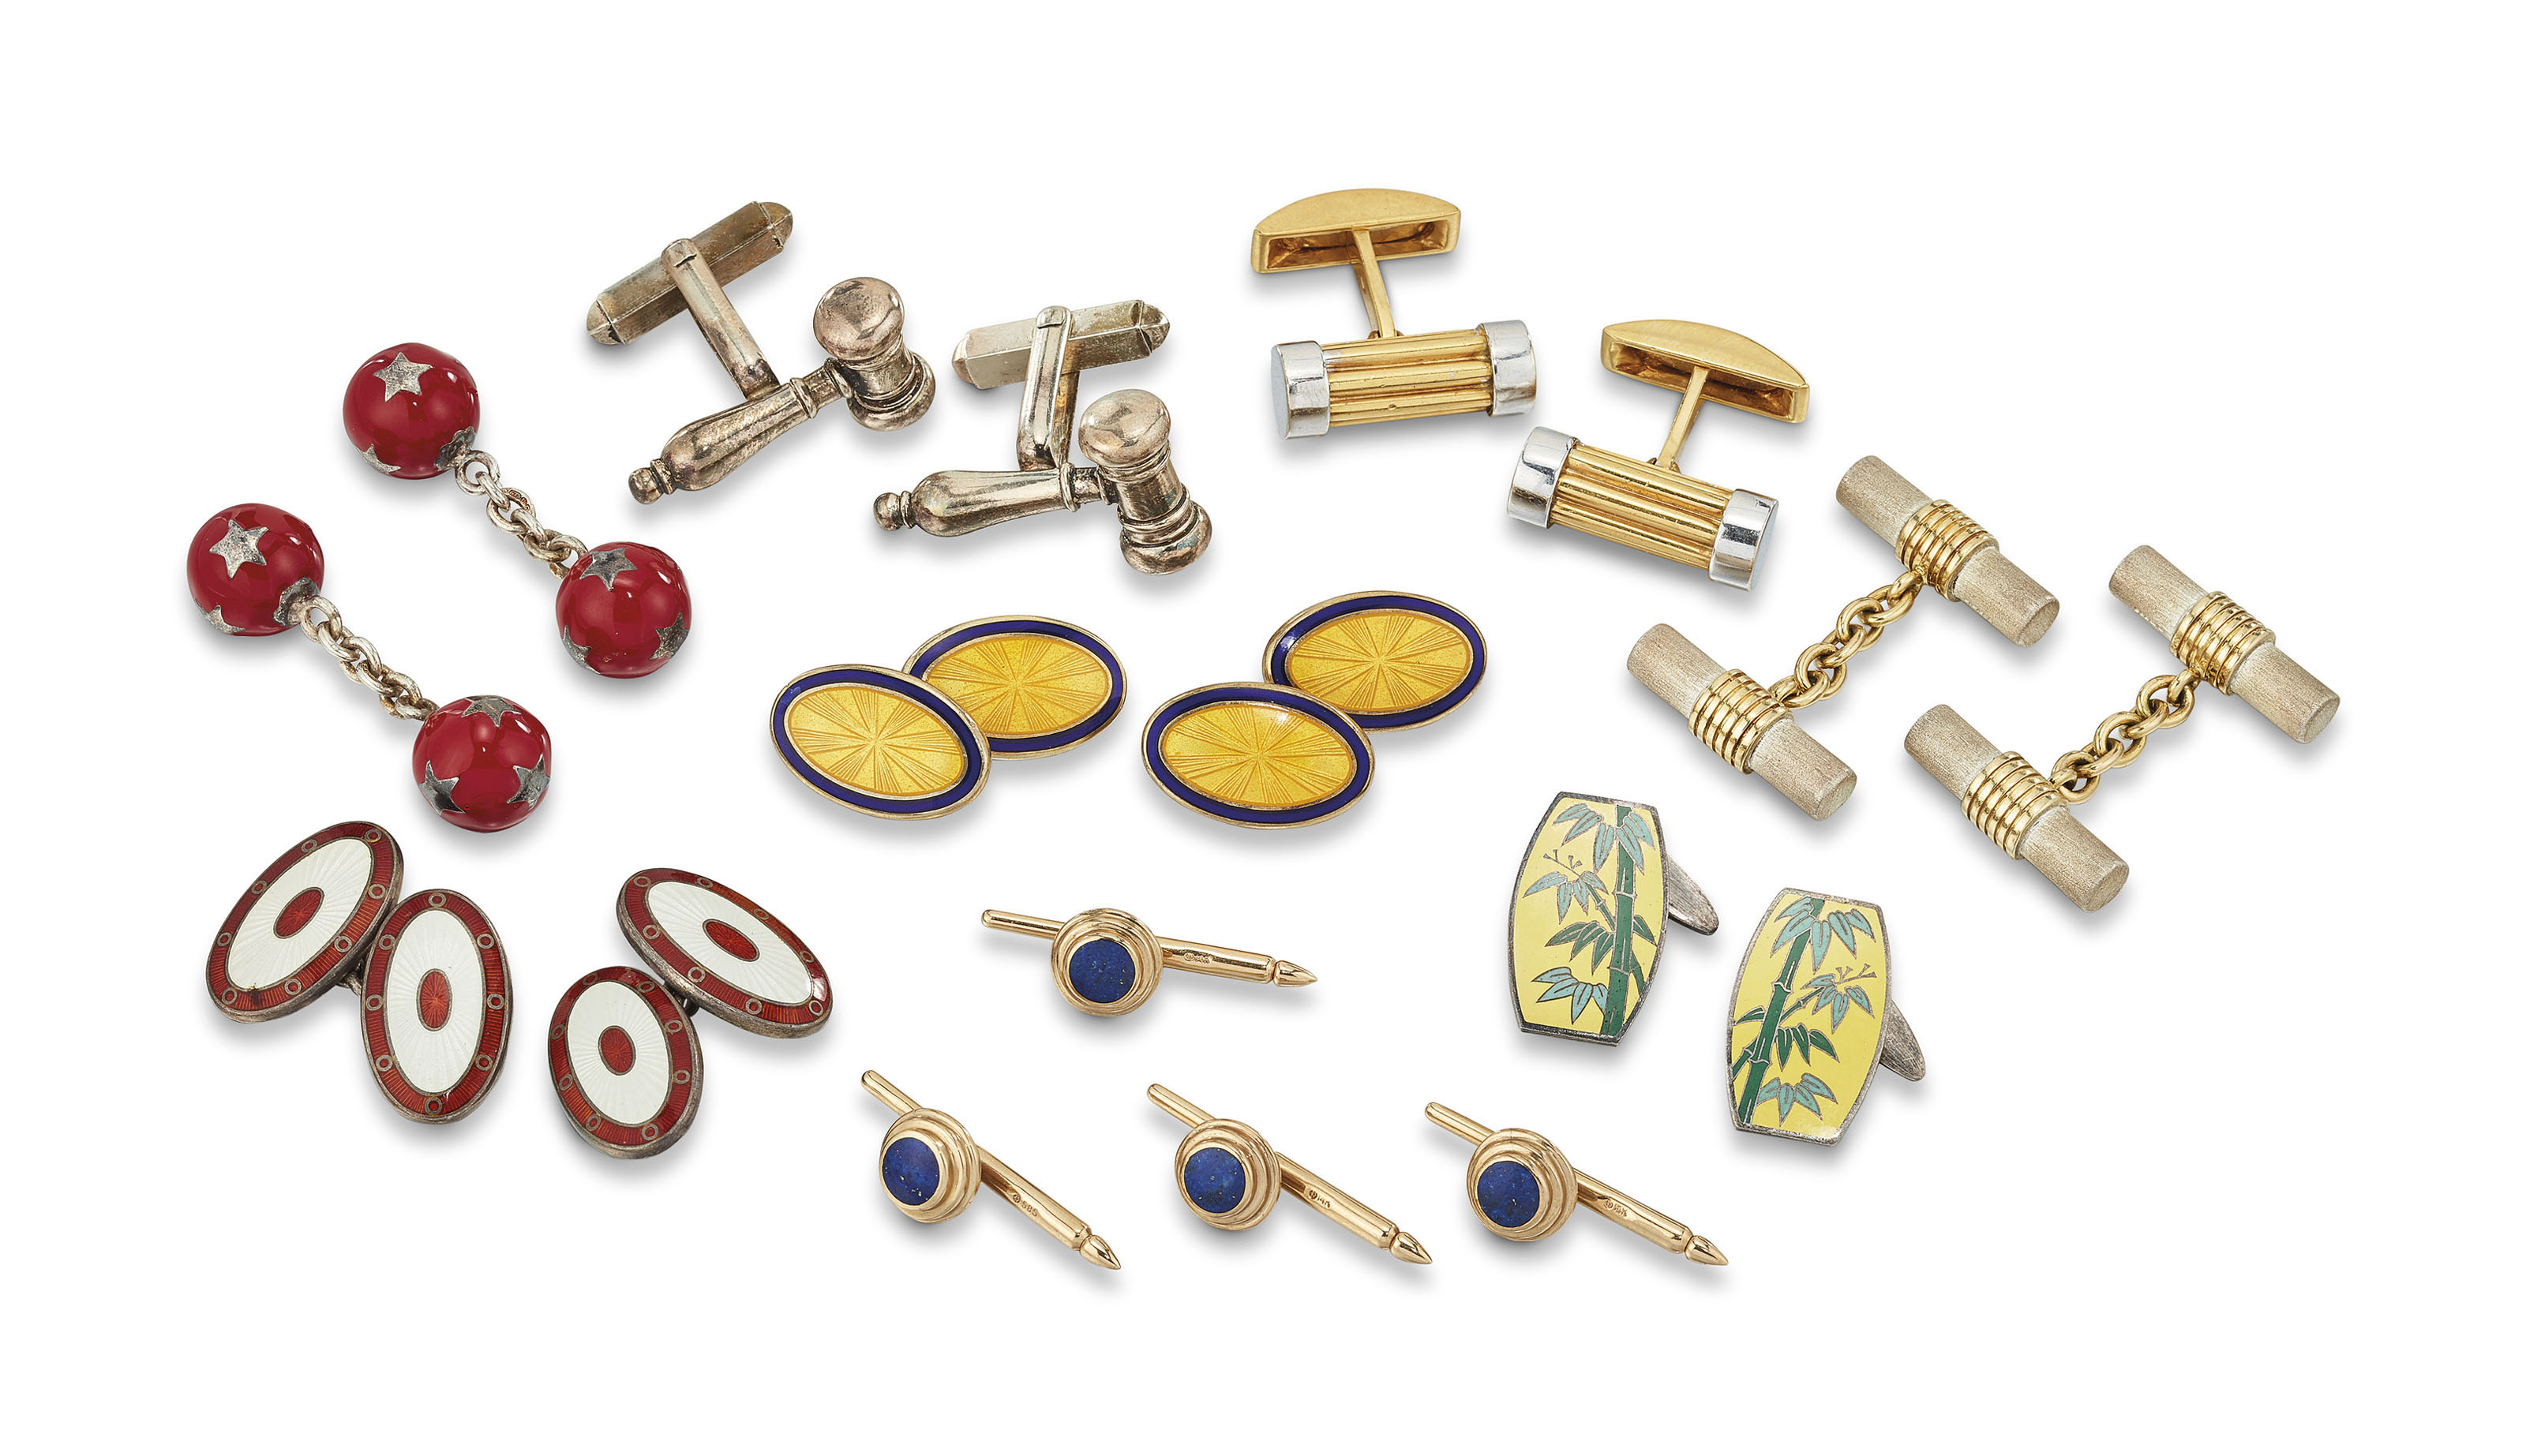 Cufflinks, Different Types of Cufflinks